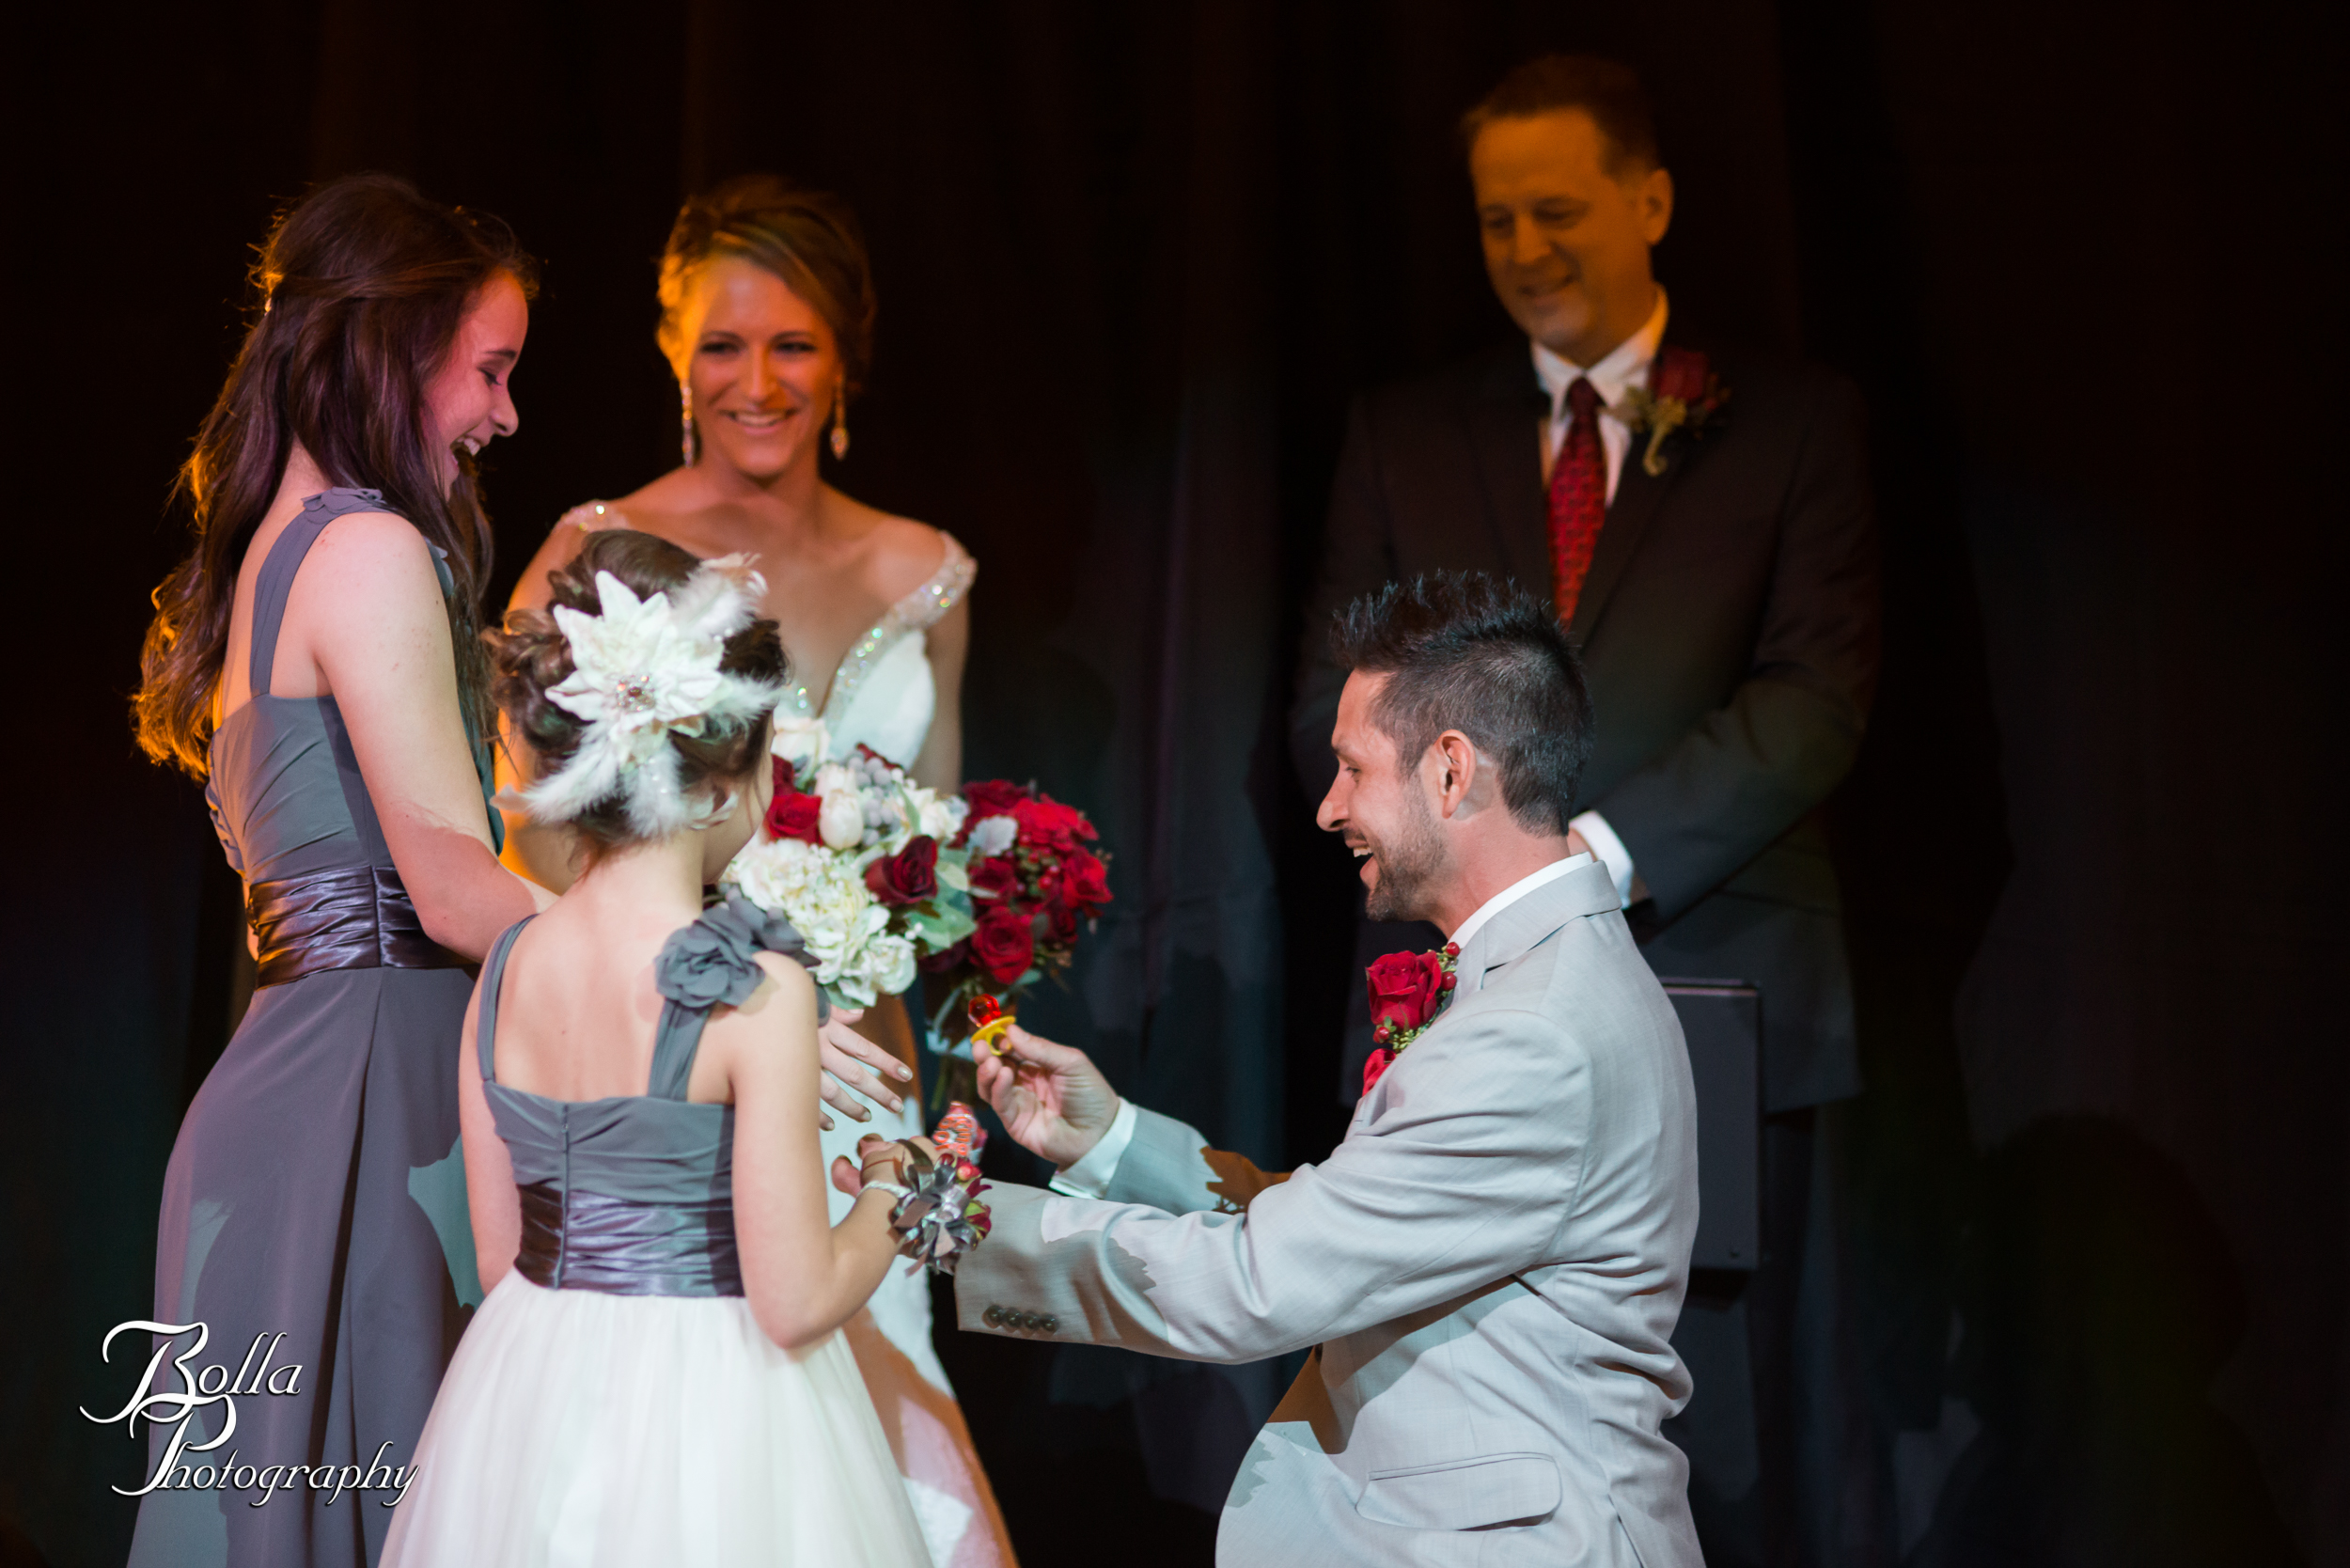 Bolla_photography_edwardsville_wedding_photographer_st_louis_weddings_highland_Allen_Warren_winter_red-0252.jpg